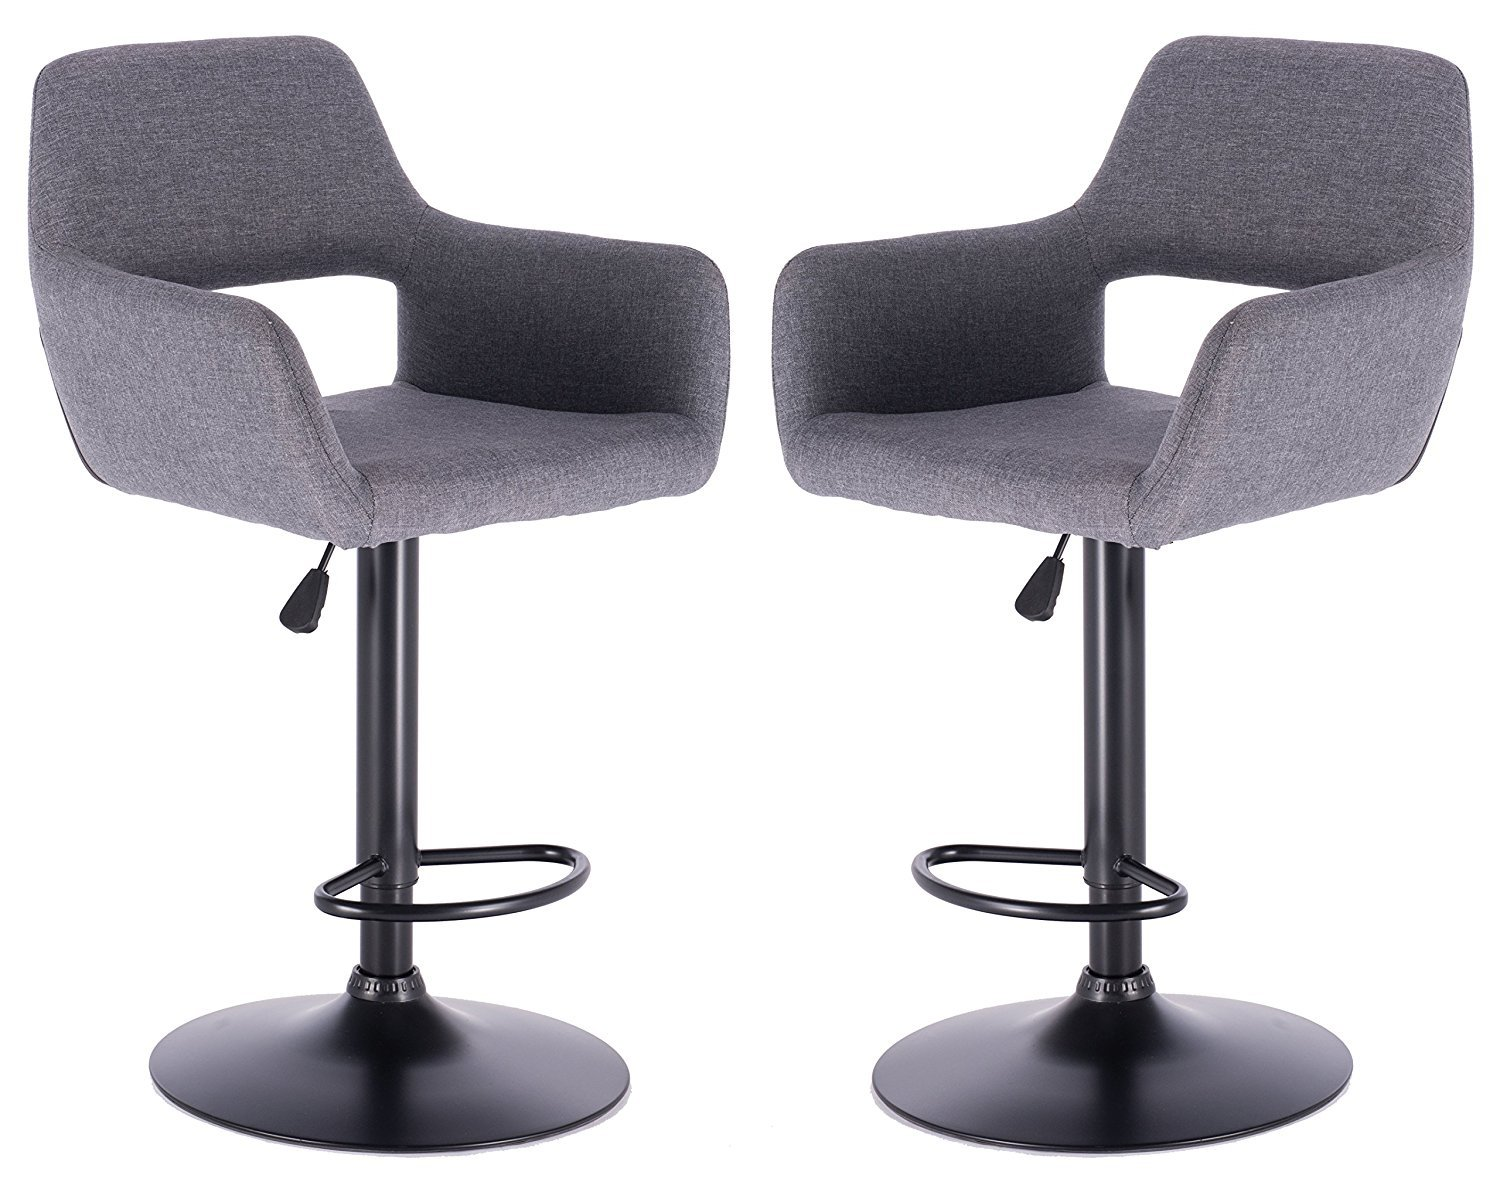 Set of 2 Grey Adjustable Bar Stools Sturdy Black Footrest Comfy Seating Stylish Counter stool Appearance Protects Flooring 360 Swivel Action SurplusRD